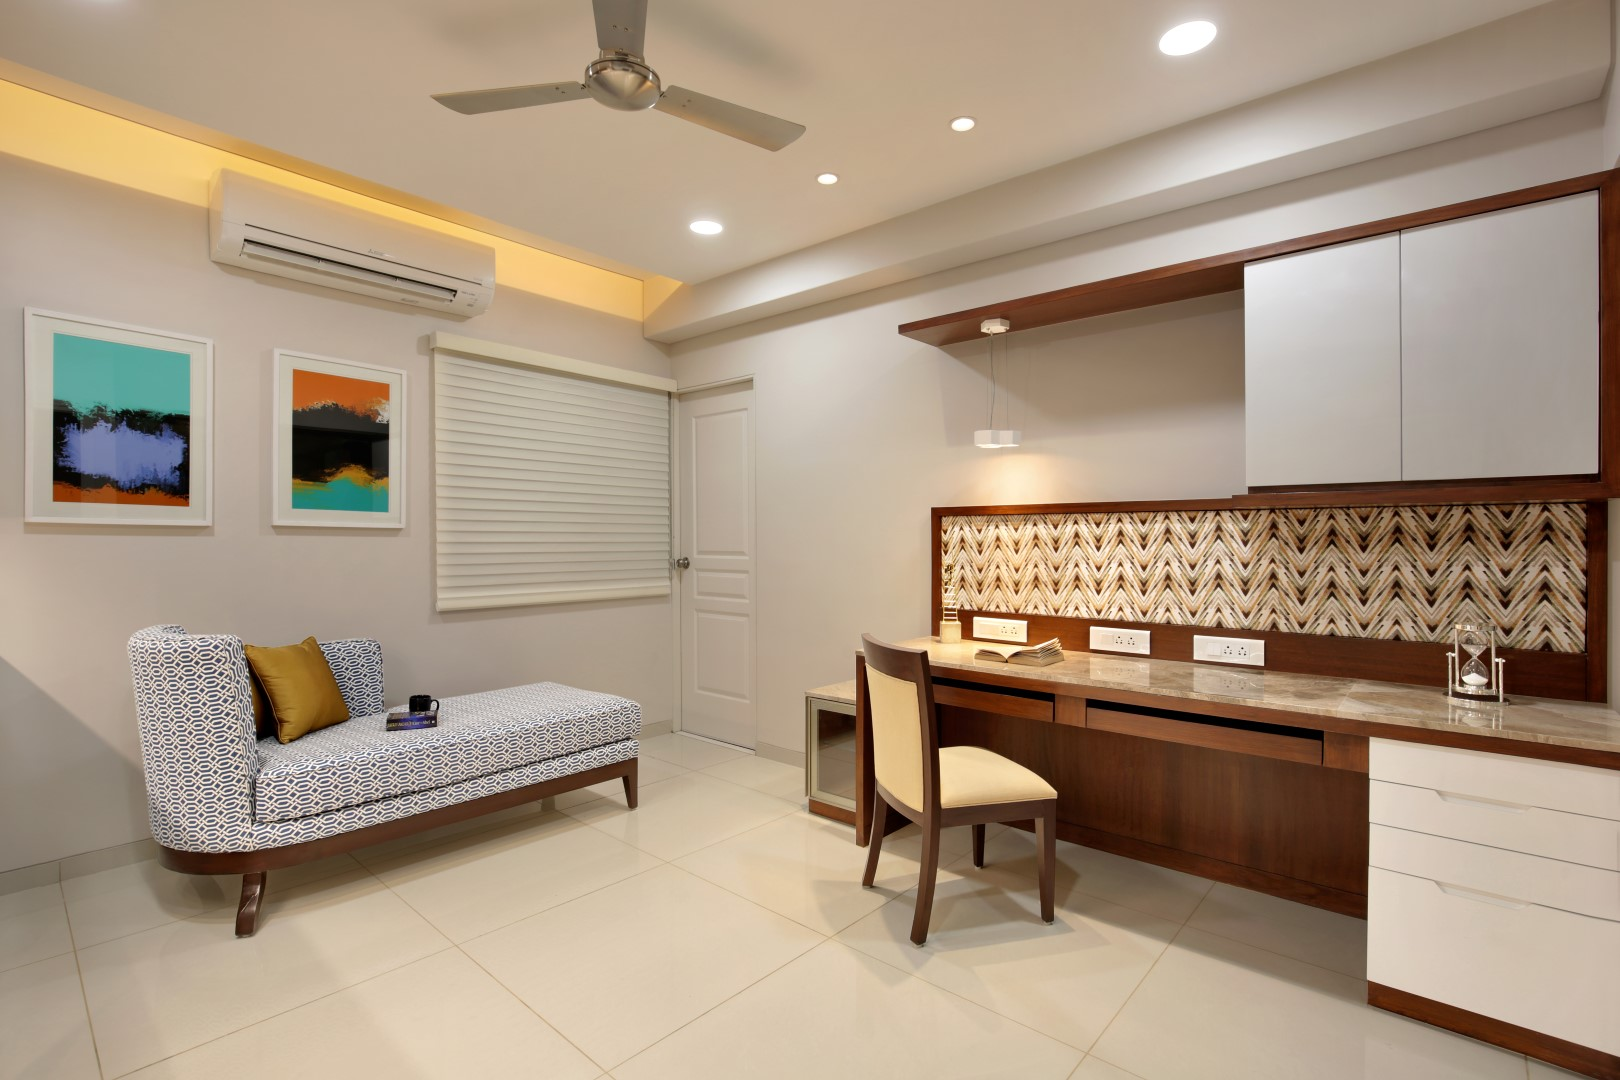 3 Bhk Flat Interiors The Oak Woods Vadodara Studio7 The Architects Diary